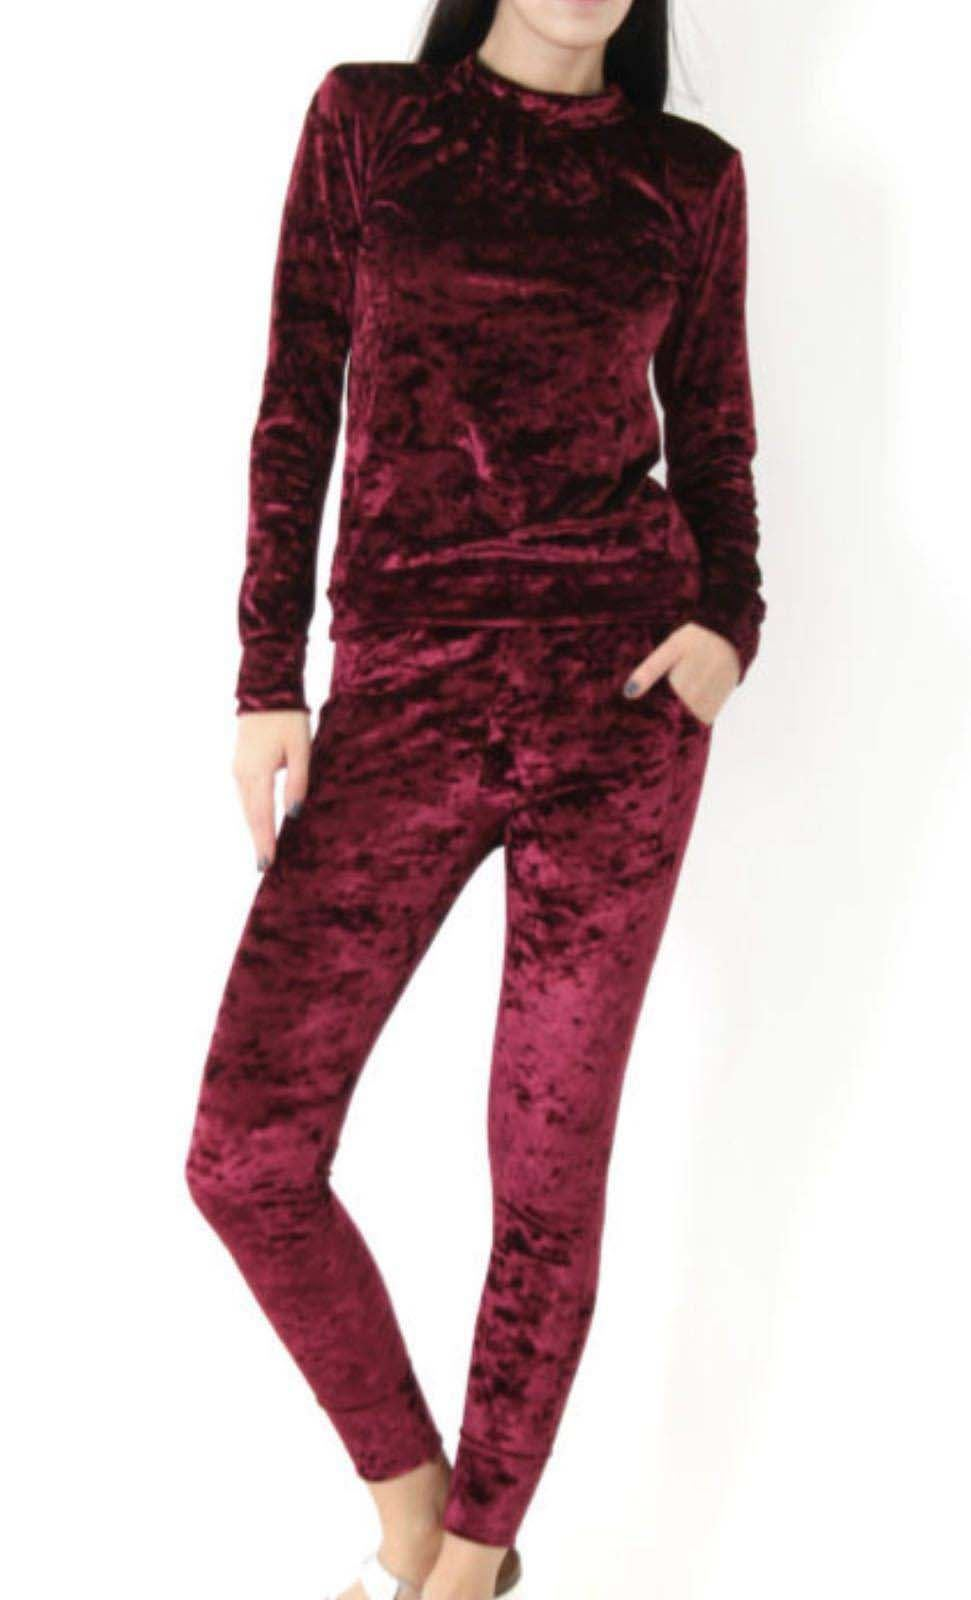 Carol Wright carries a wide selection of stylish Women's Loungewear including Rompers, Kaftans, Shifts, and more. Plus Sizes! SHOP NOW & SAVE!!